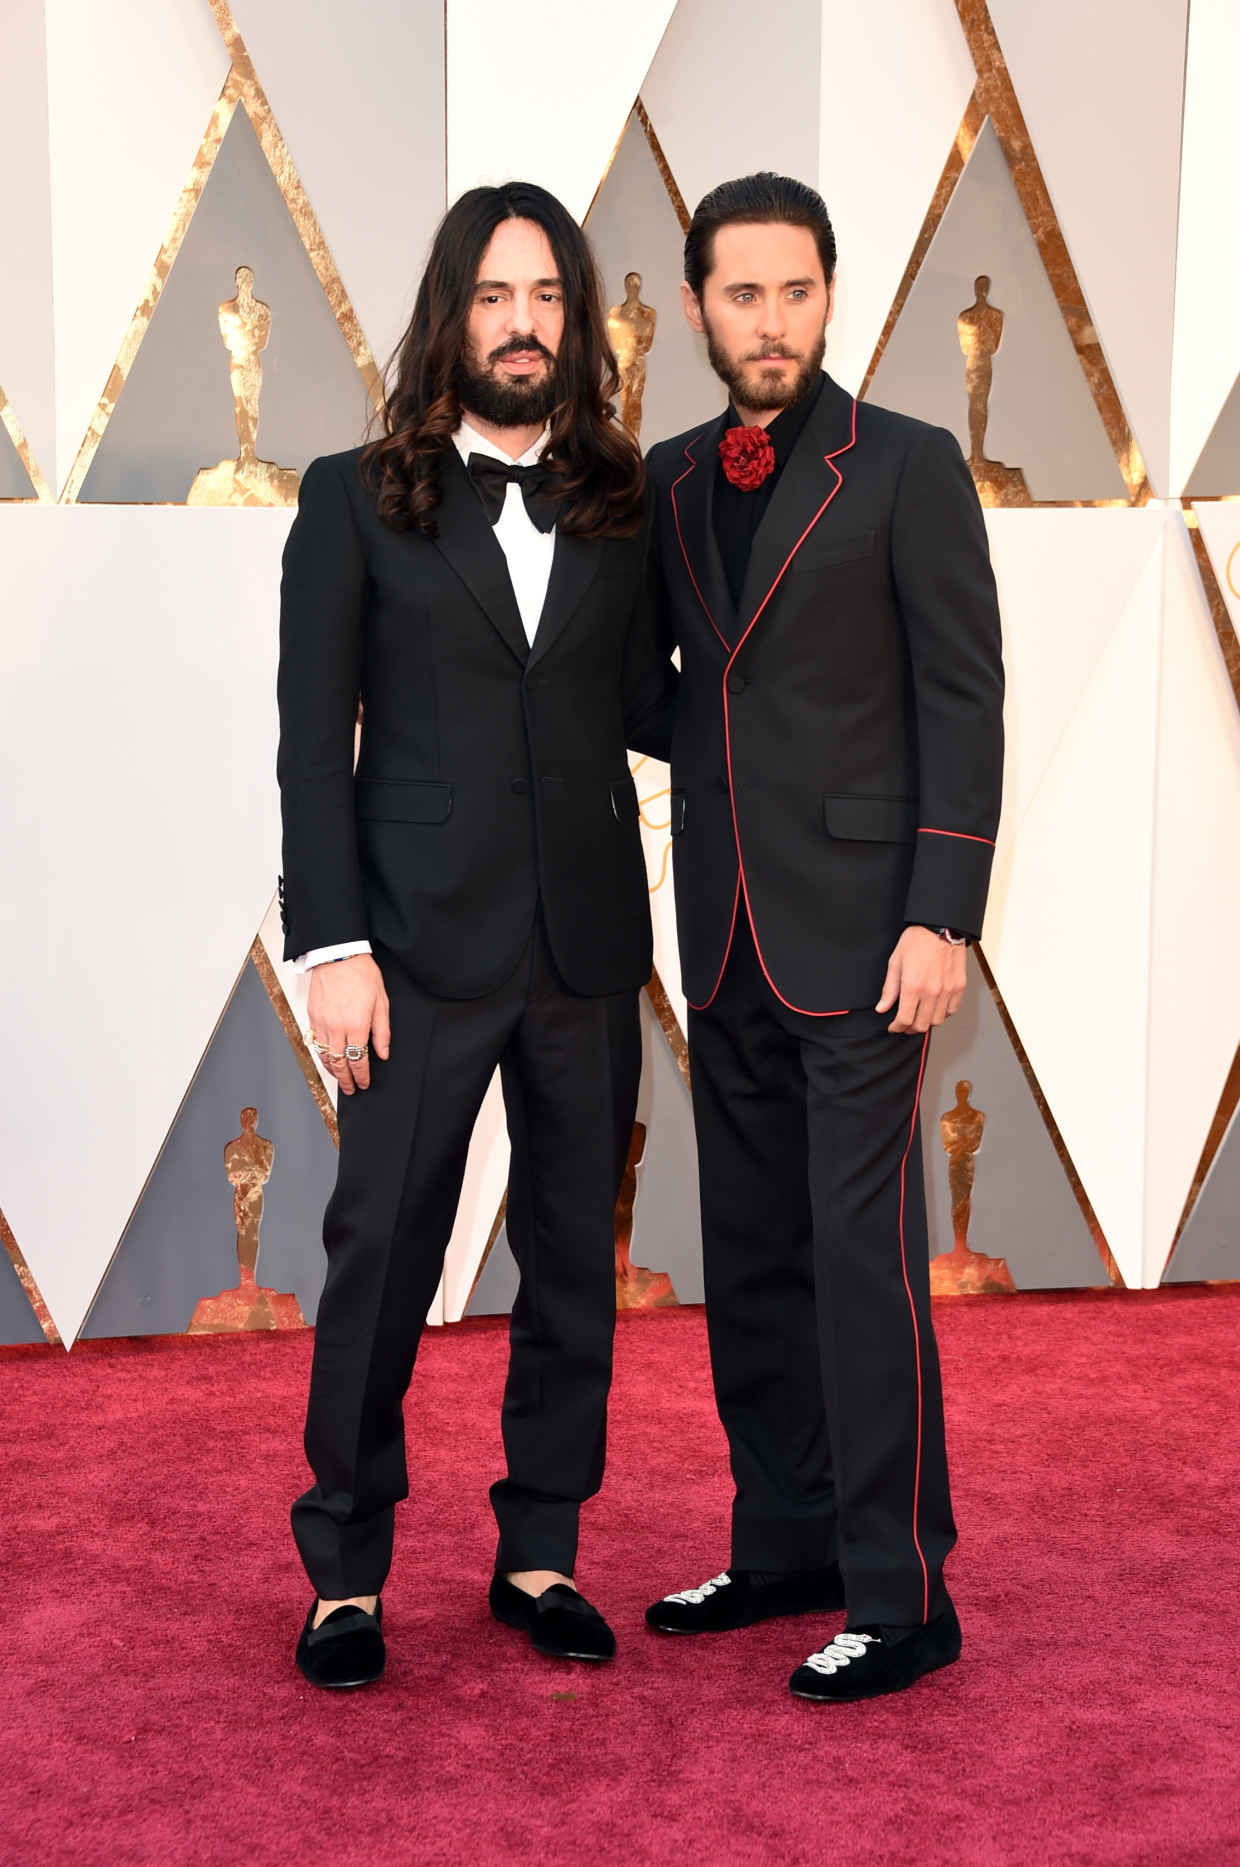 Jared Leto and Alessandro Michele of Gucci